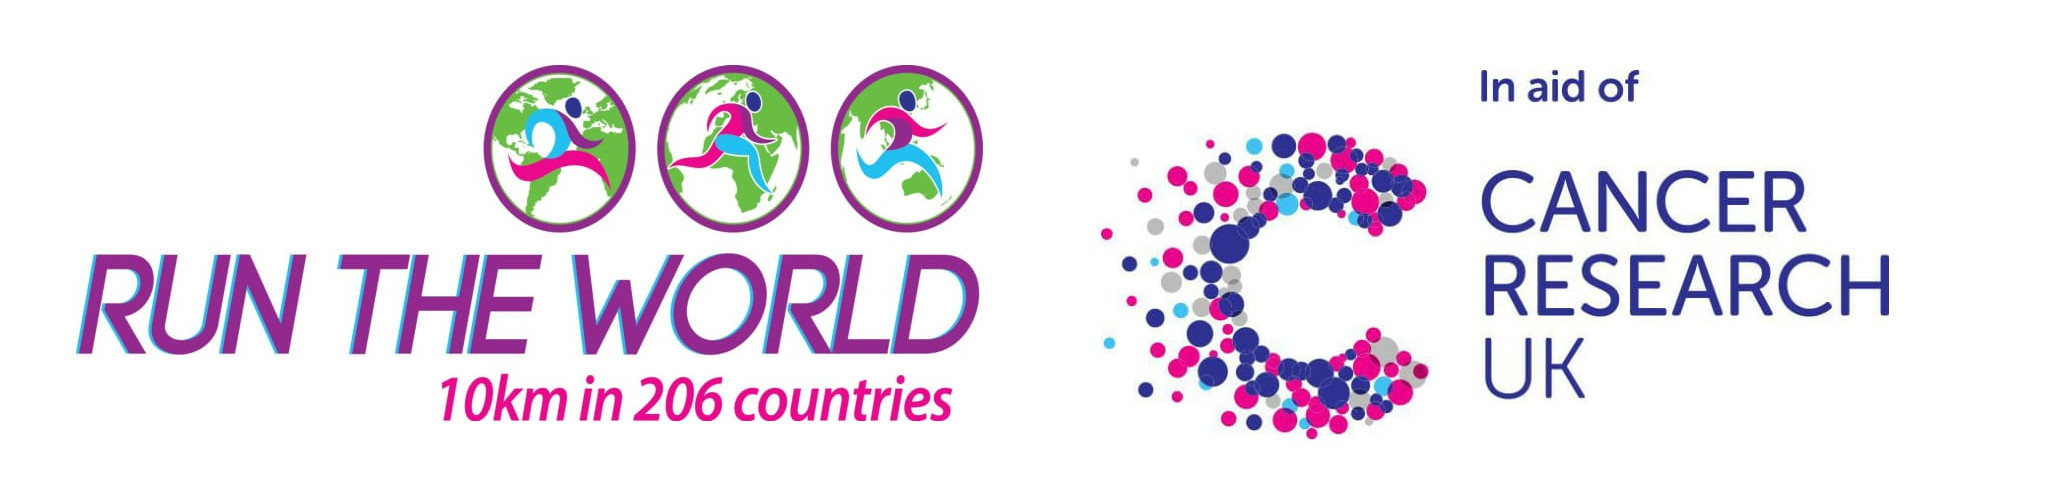 Run The World - To run 10km in every country in the world – a total of 206 countries – by the 2020 Olympics in Tokyo.